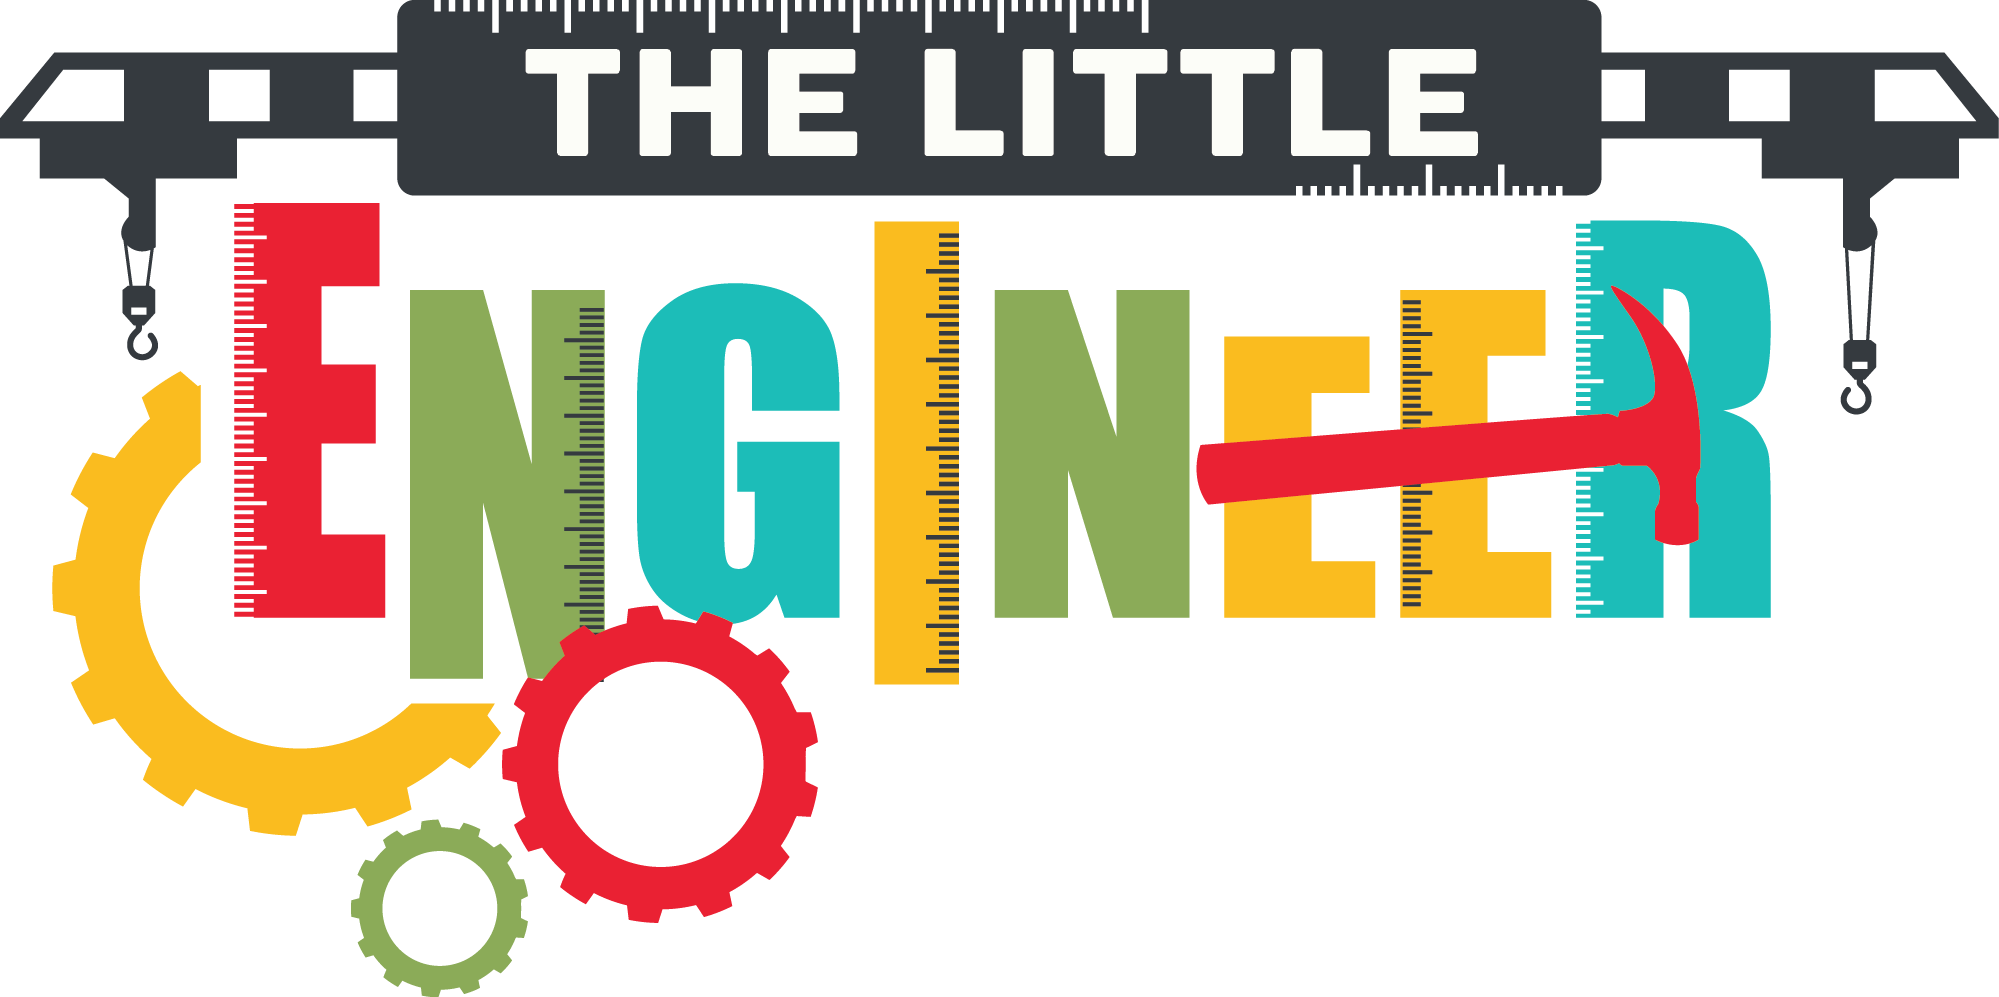 The Little Engineer_CV.png